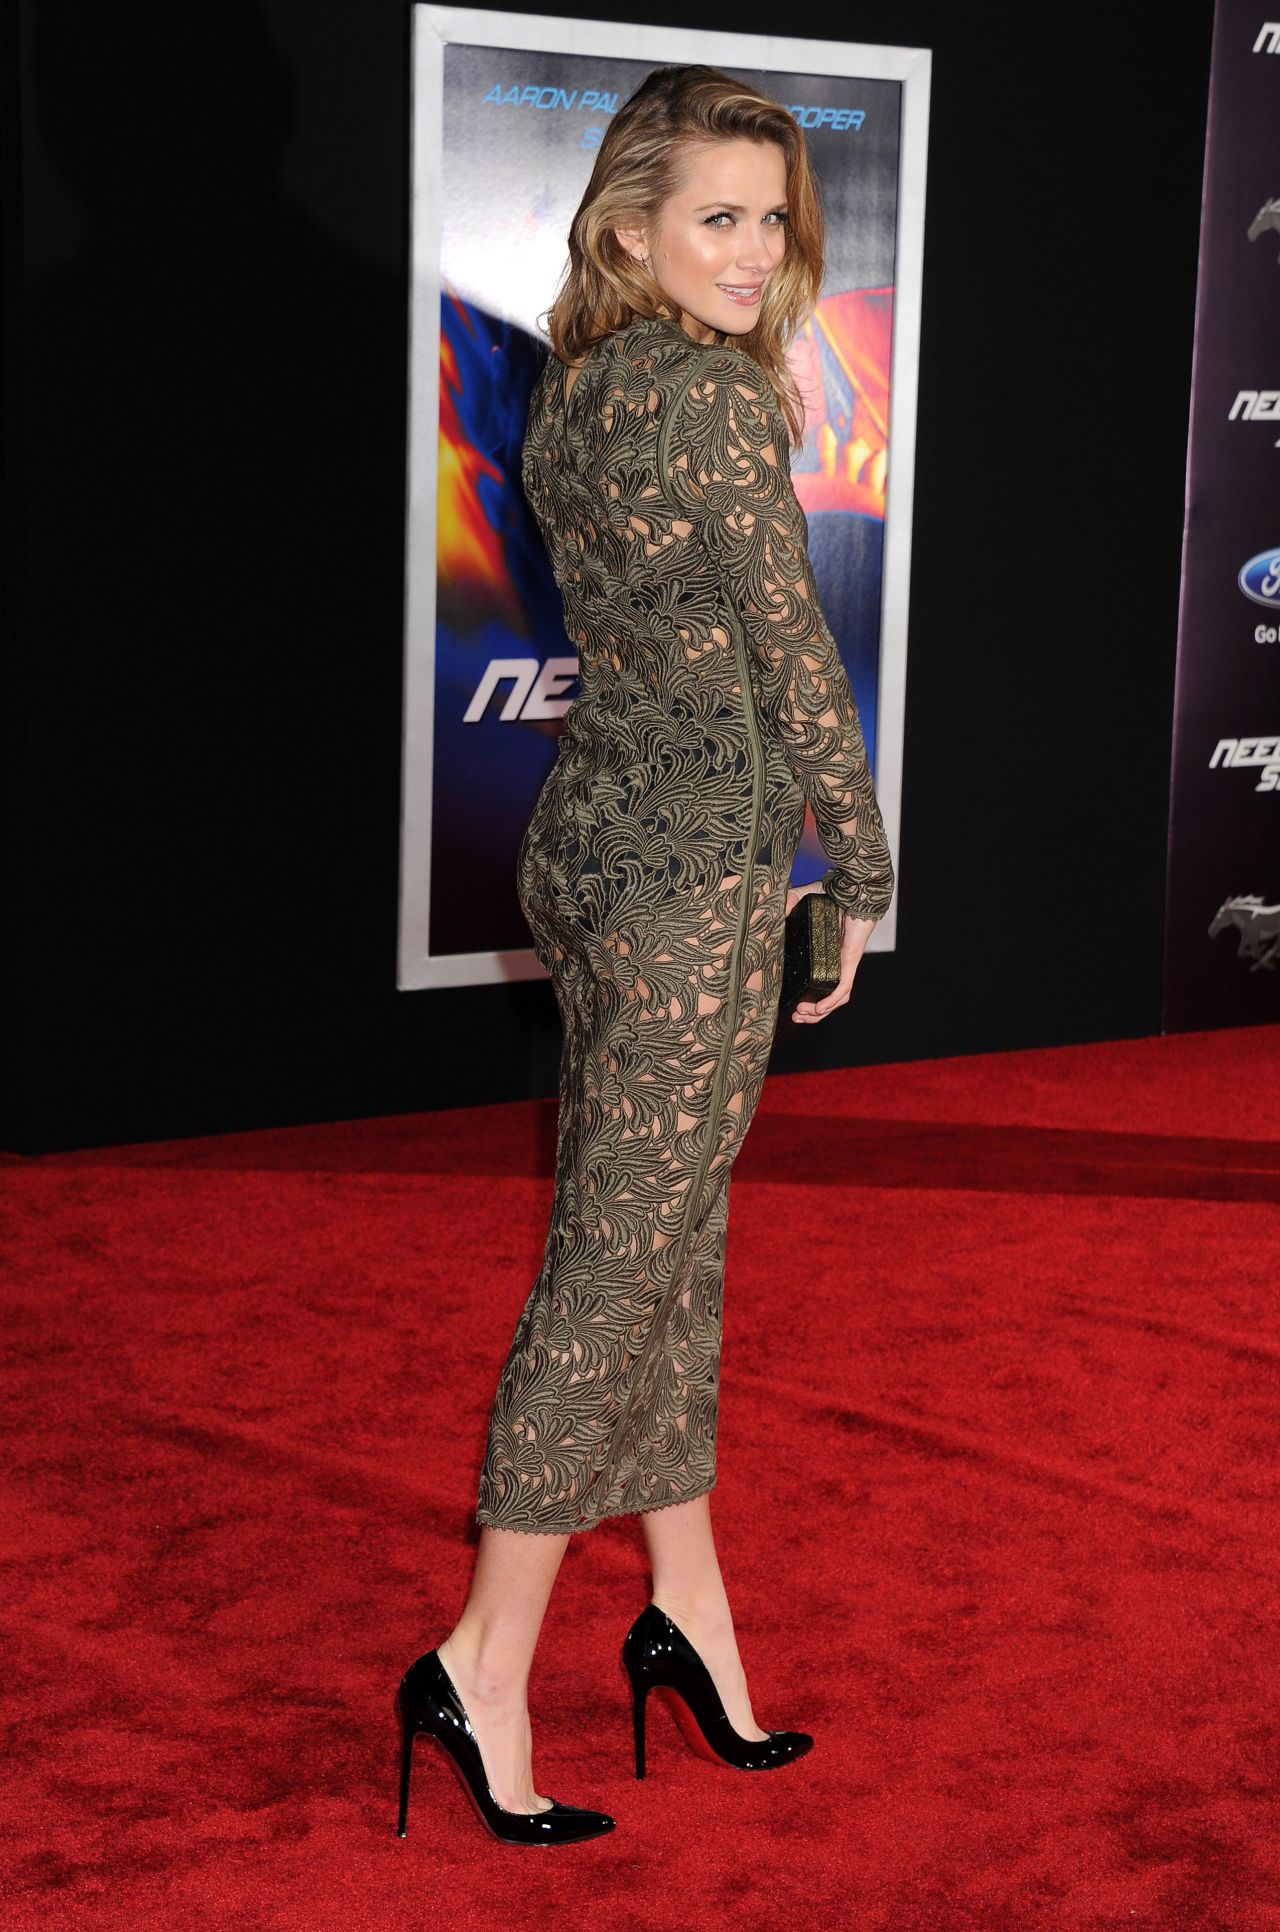 Shantel Vansanten Need For Speed Premiere In Hollywood